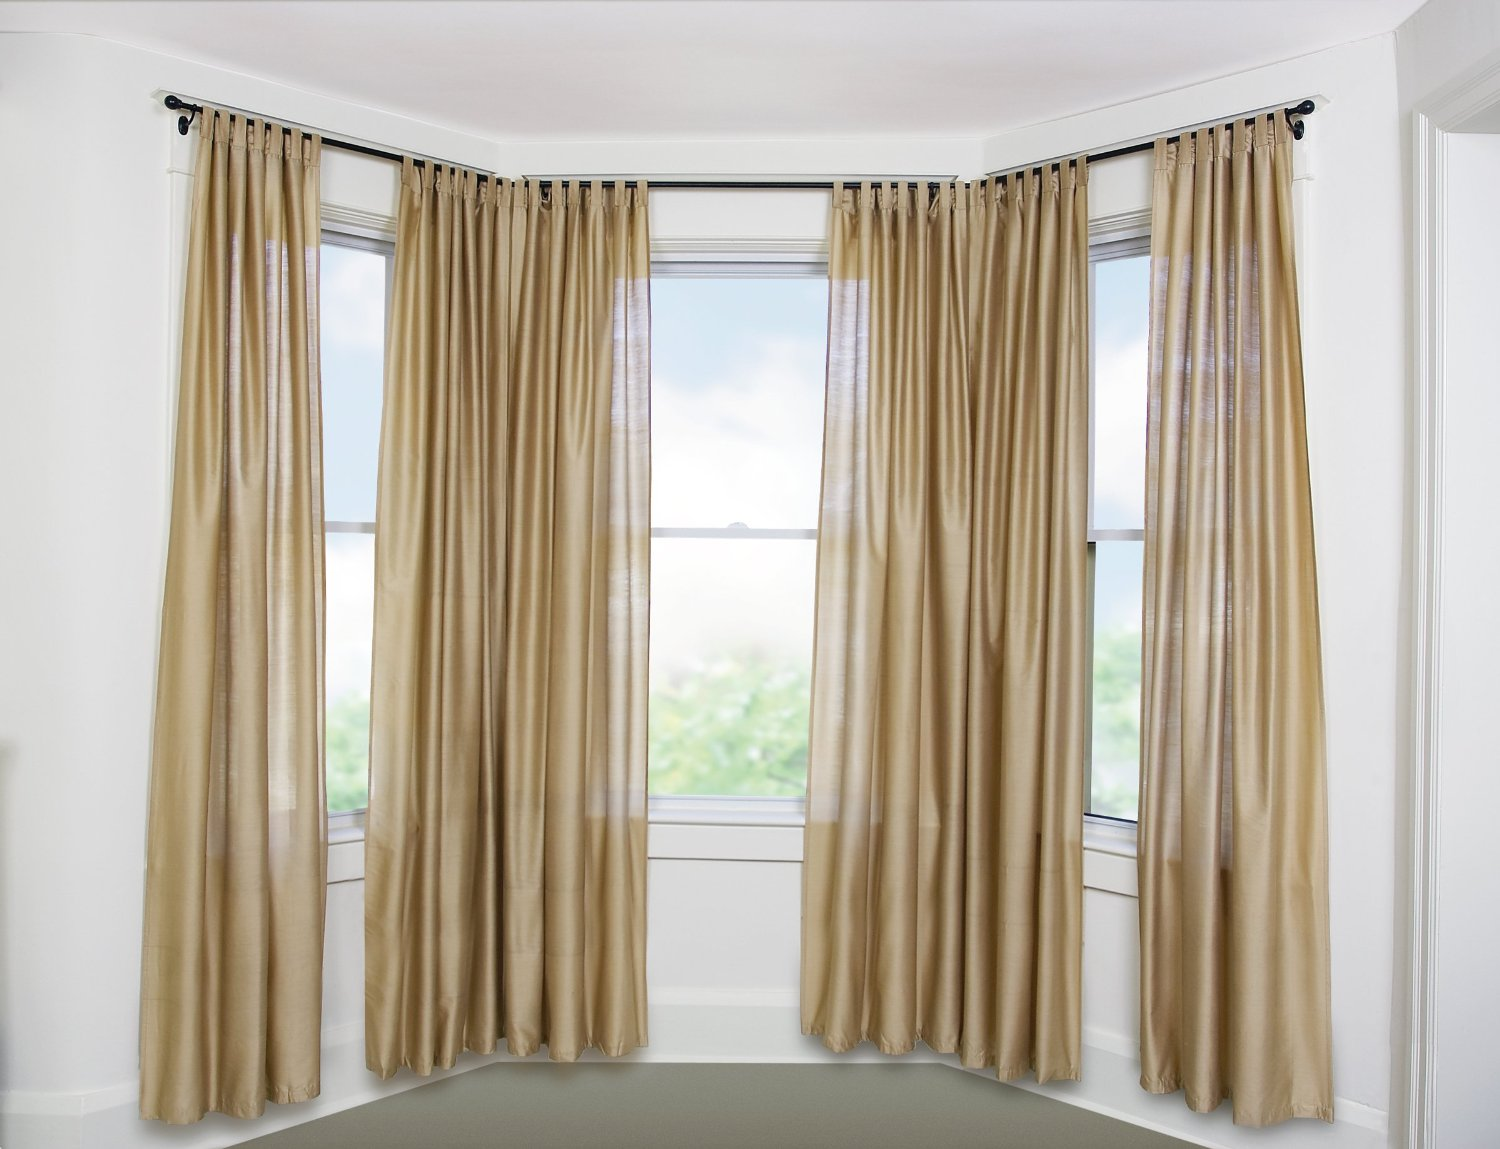 New Build Homes Interior Design Curtain Rods For Bay Windows Homesfeed